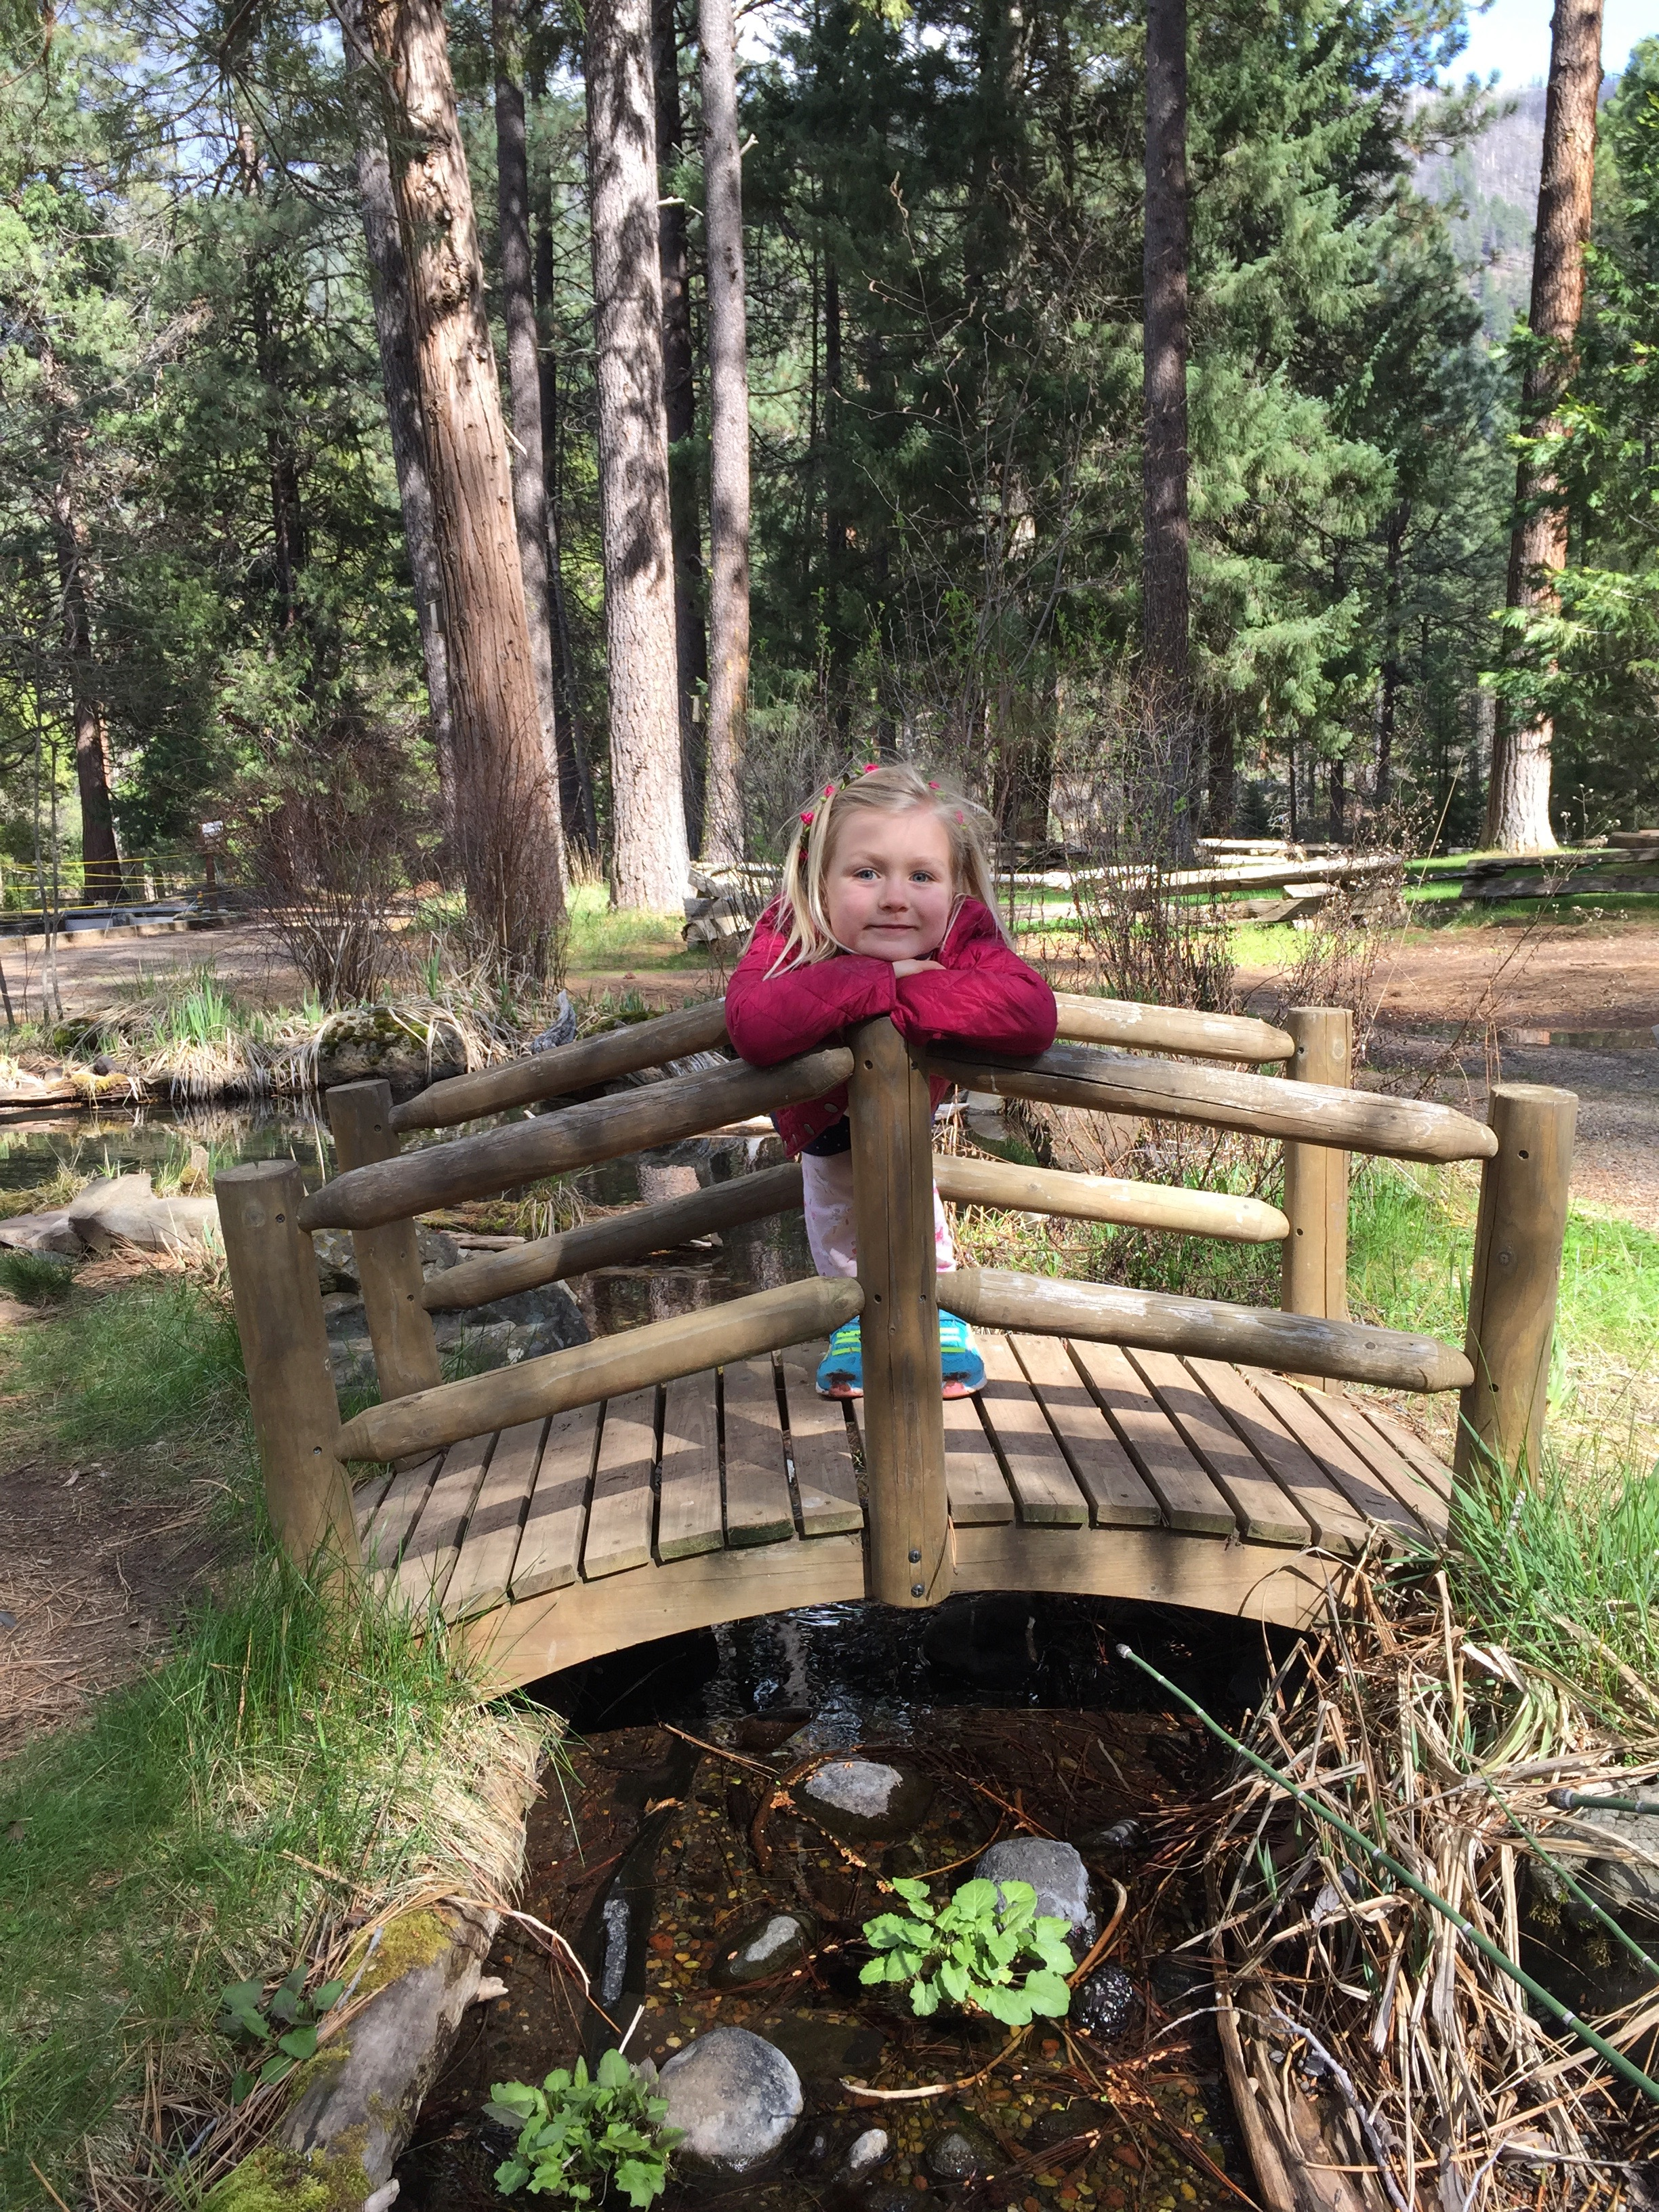 Walk or drive down river to the Wizard Falls fish hatchery, where you can feed enormous trout and observe schools of thousands of fingerlings (baby trout). A great day-hike or short drive from House on Metolius.